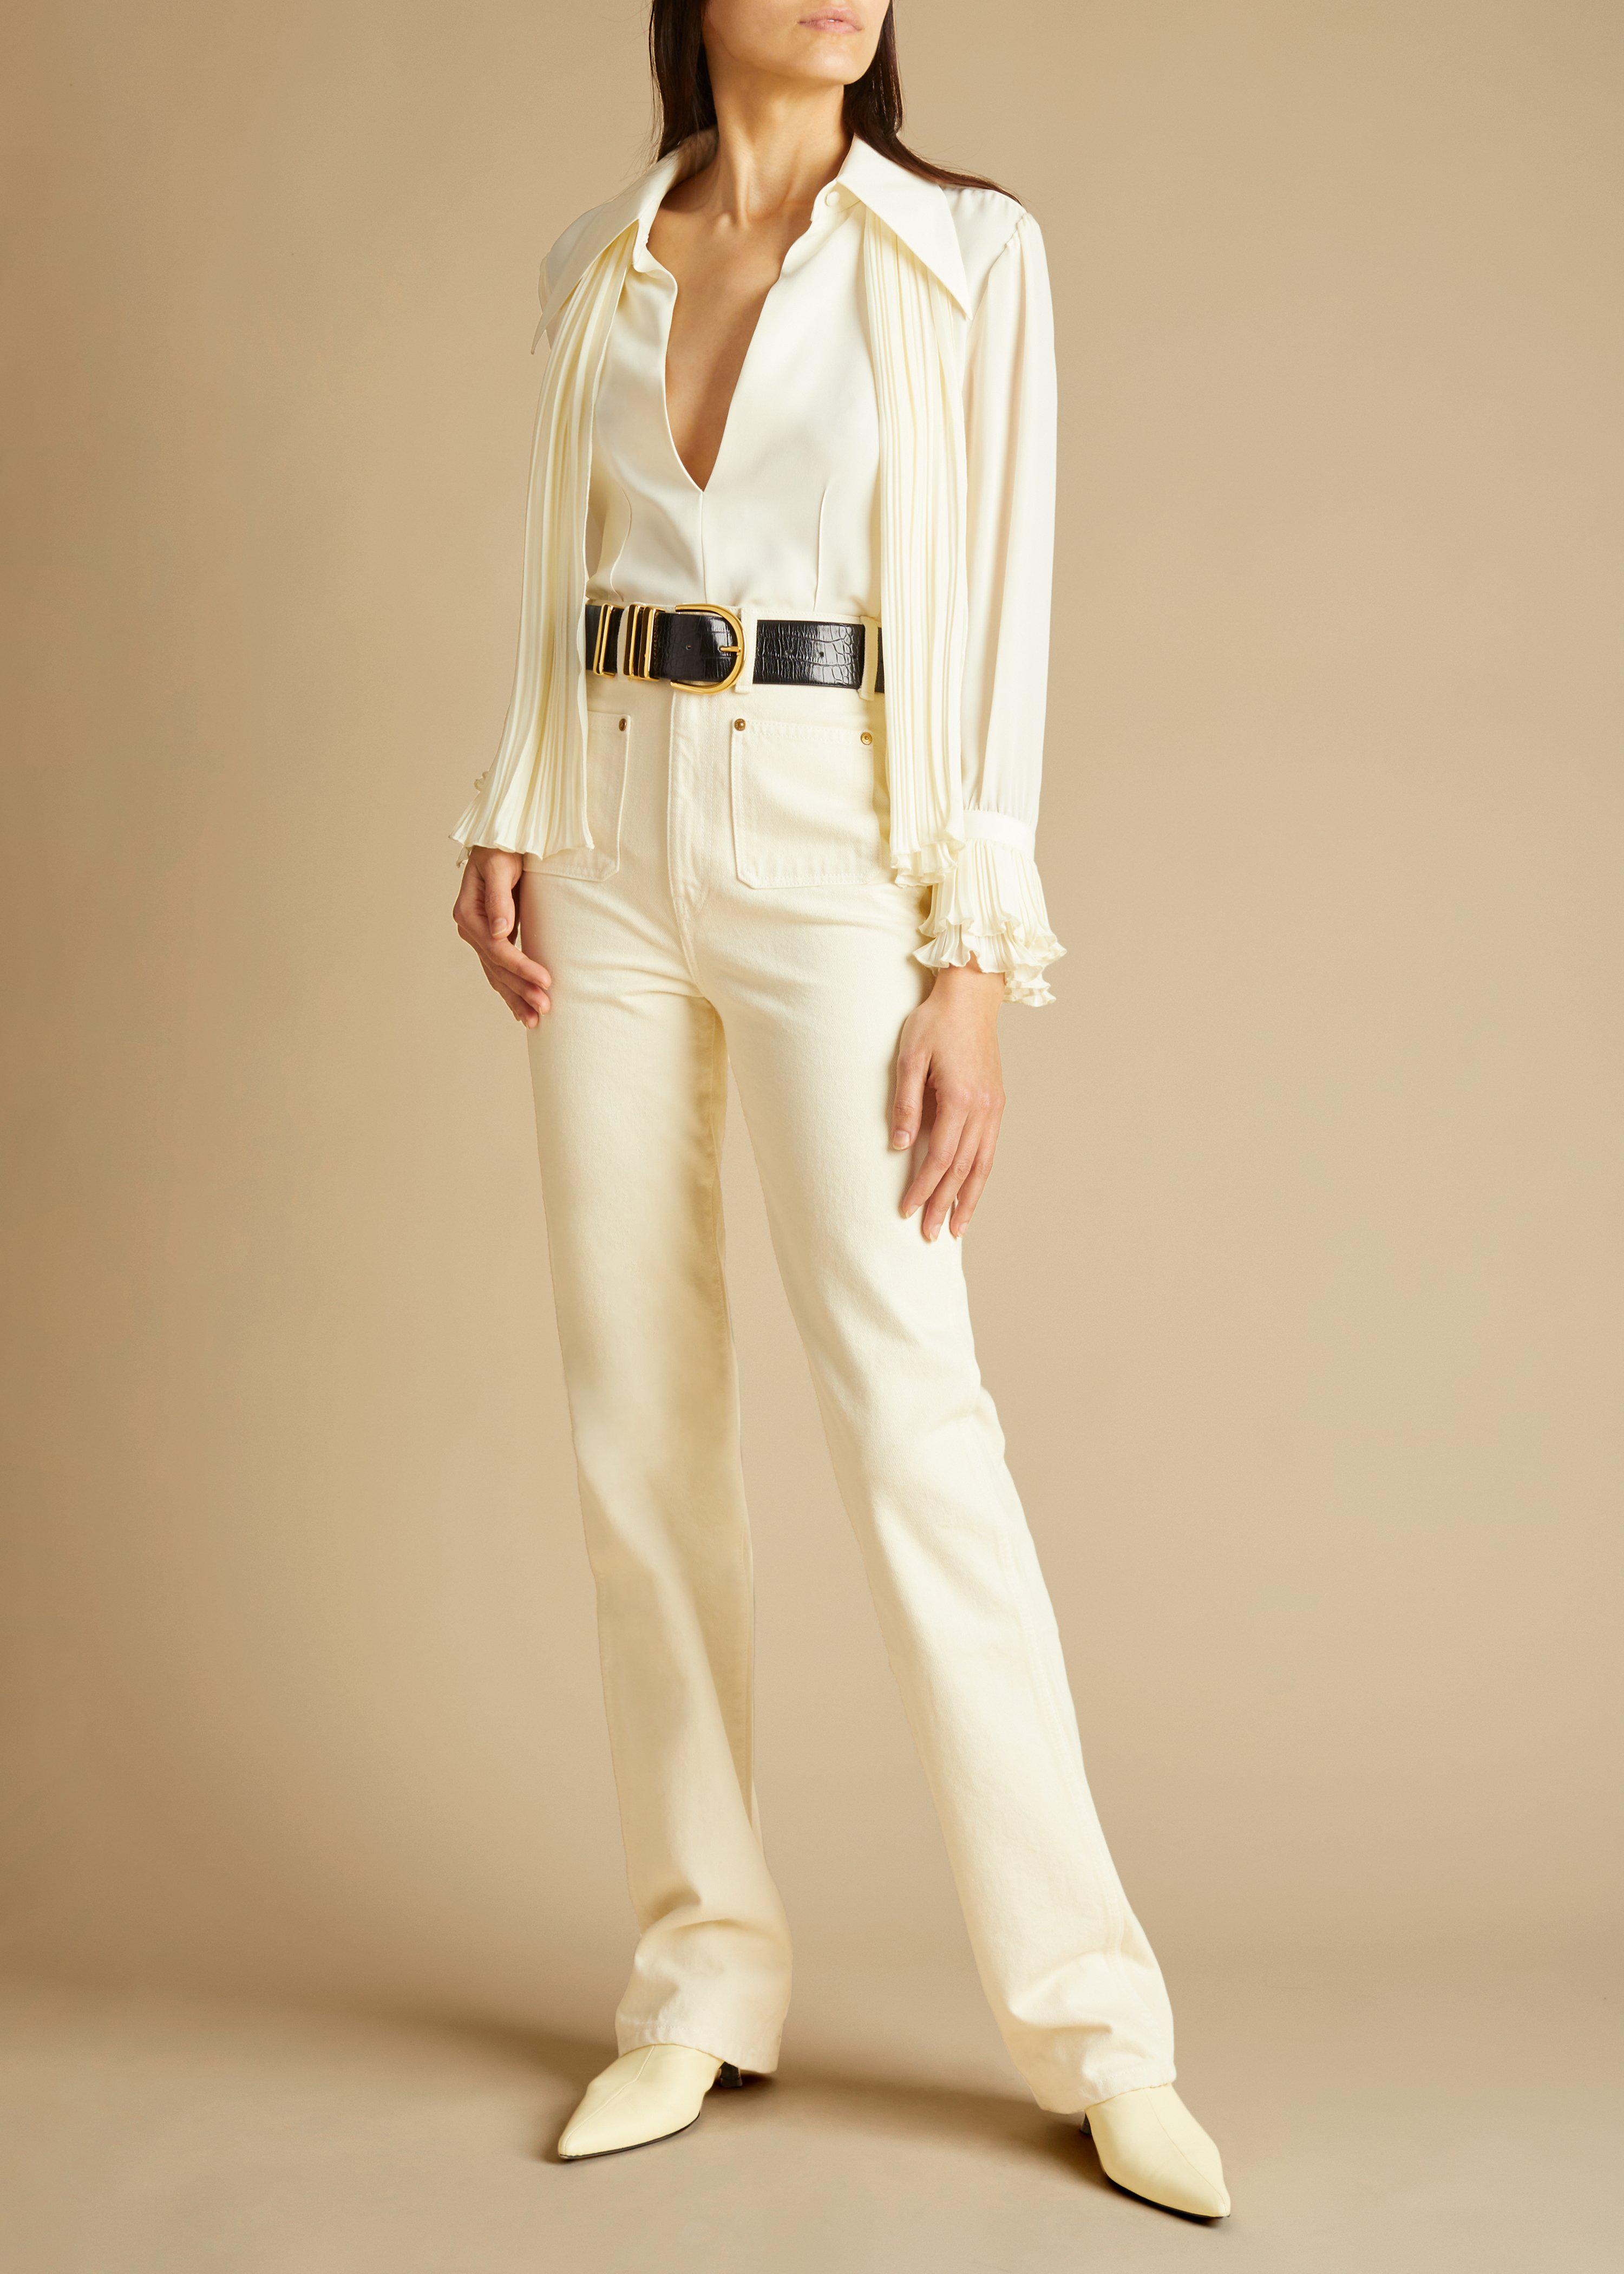 The Nia Top in Ivory 1